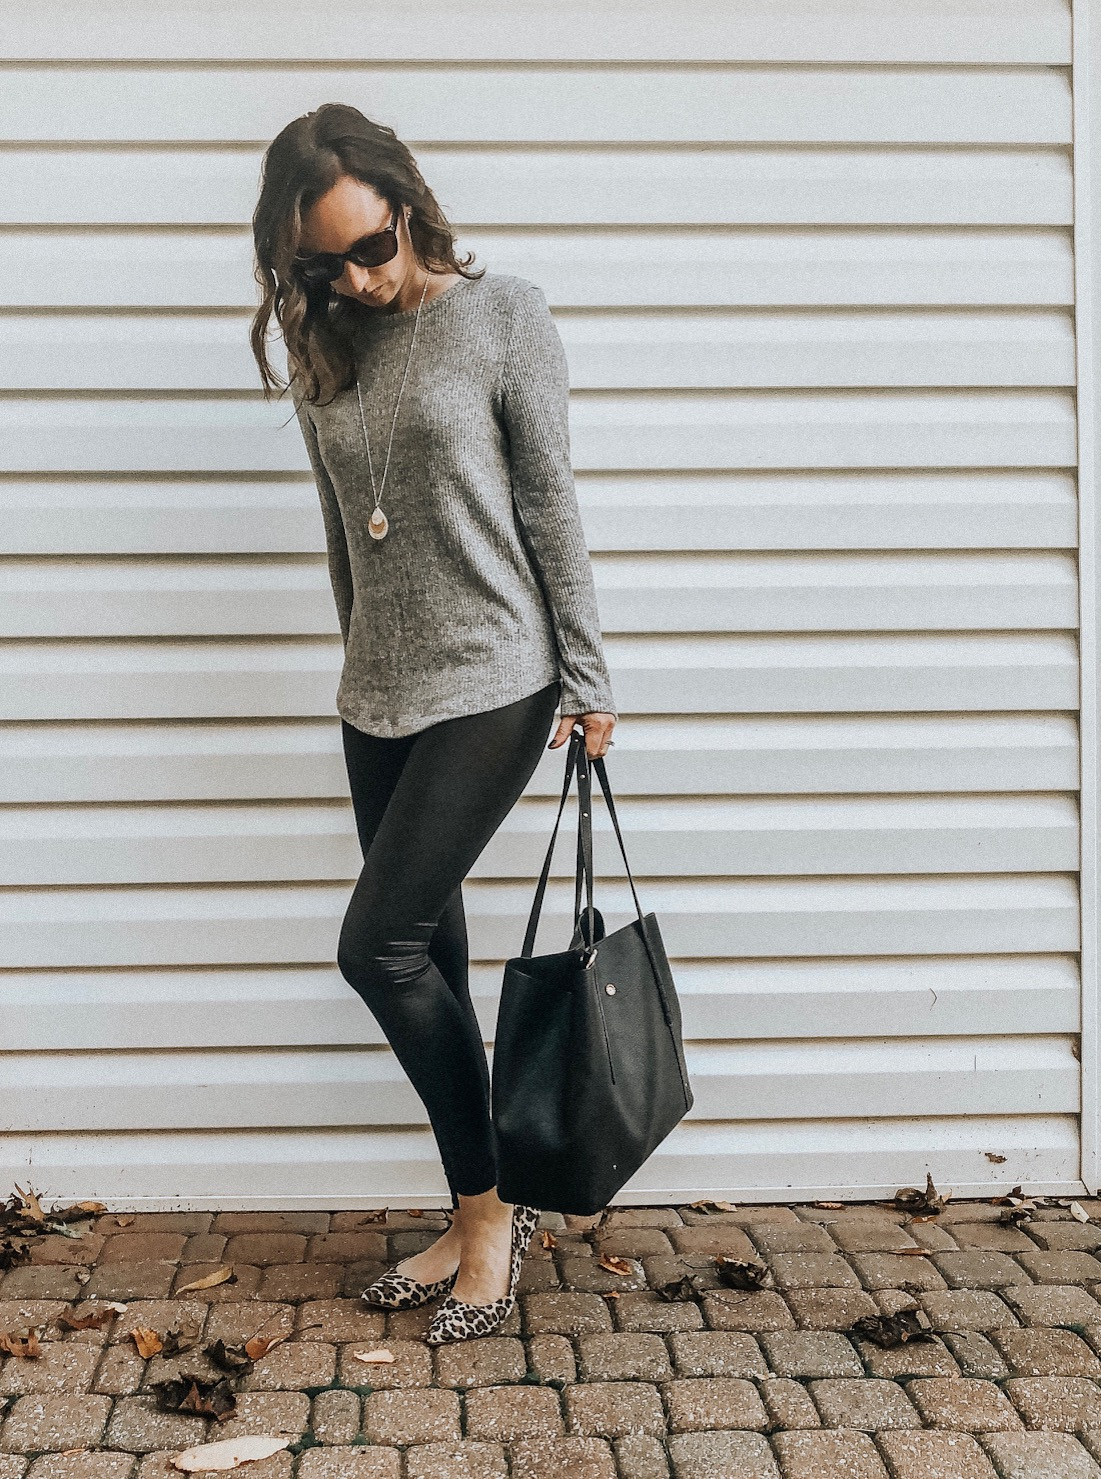 Fall Instagram Favorites | Daily Splendor Life and Style Blog | Faux leather leggings, sweater and tote bag #casualstyle #streetstyle #momstyle #everydayfashion #fallstyle #fallneutrals #fauxleather